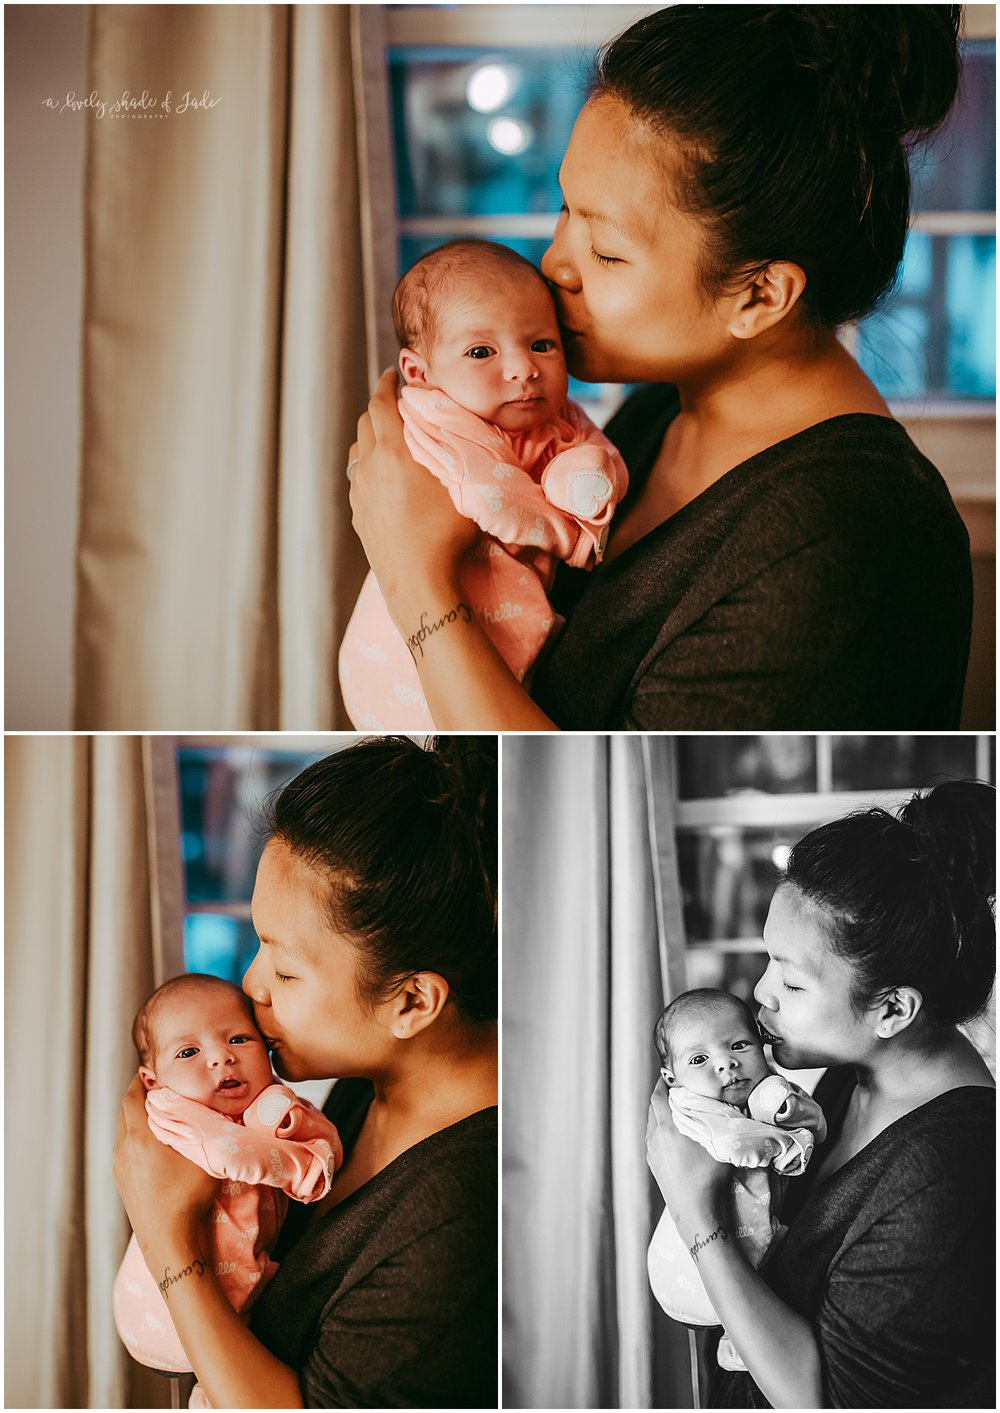 Kensington_Lifestyle_Newborn_NJ_Photographer_0007.jpg